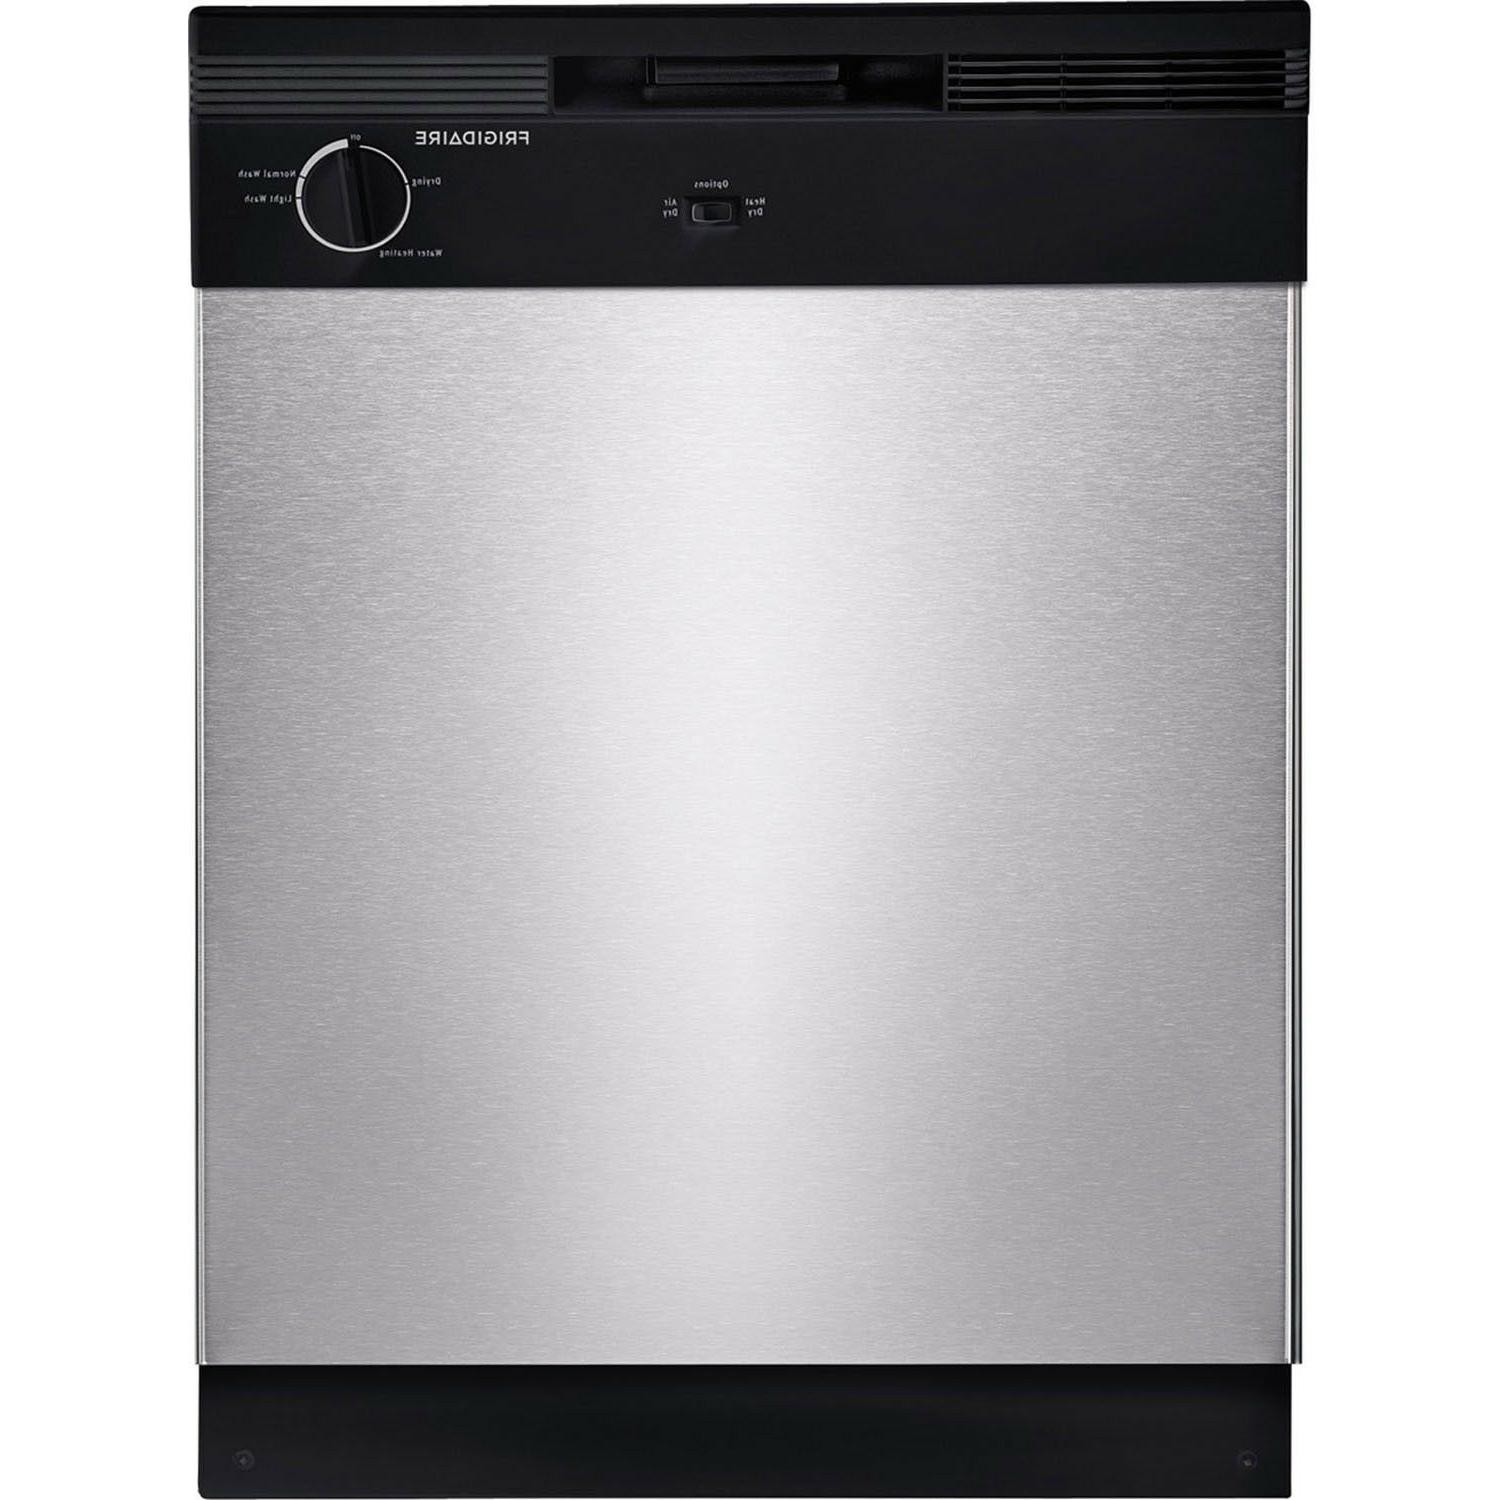 fbd2400ks stainless built dishwasher